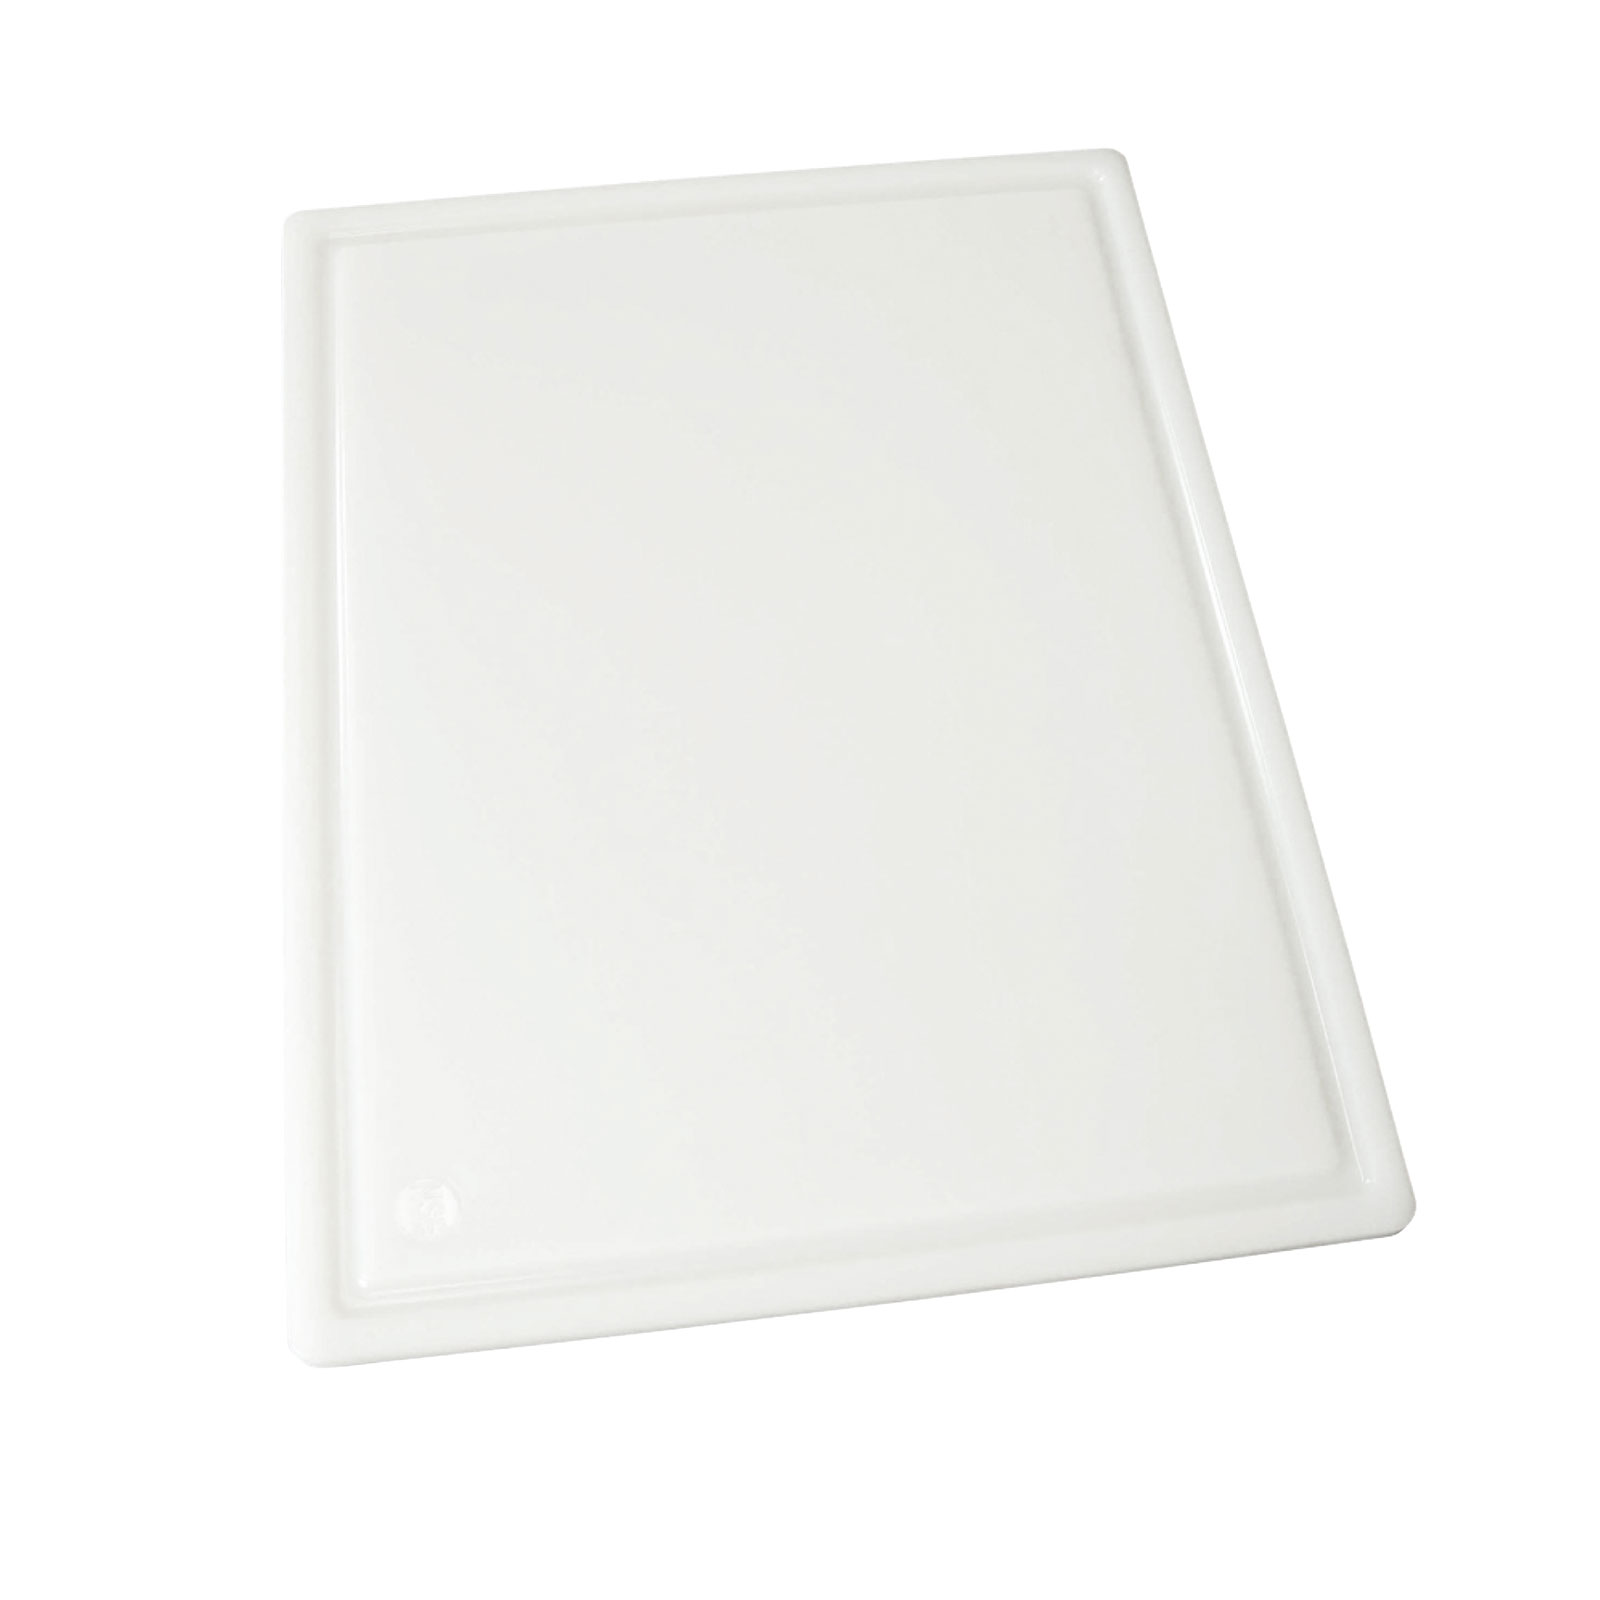 Winco CBI-1218 cutting board, plastic